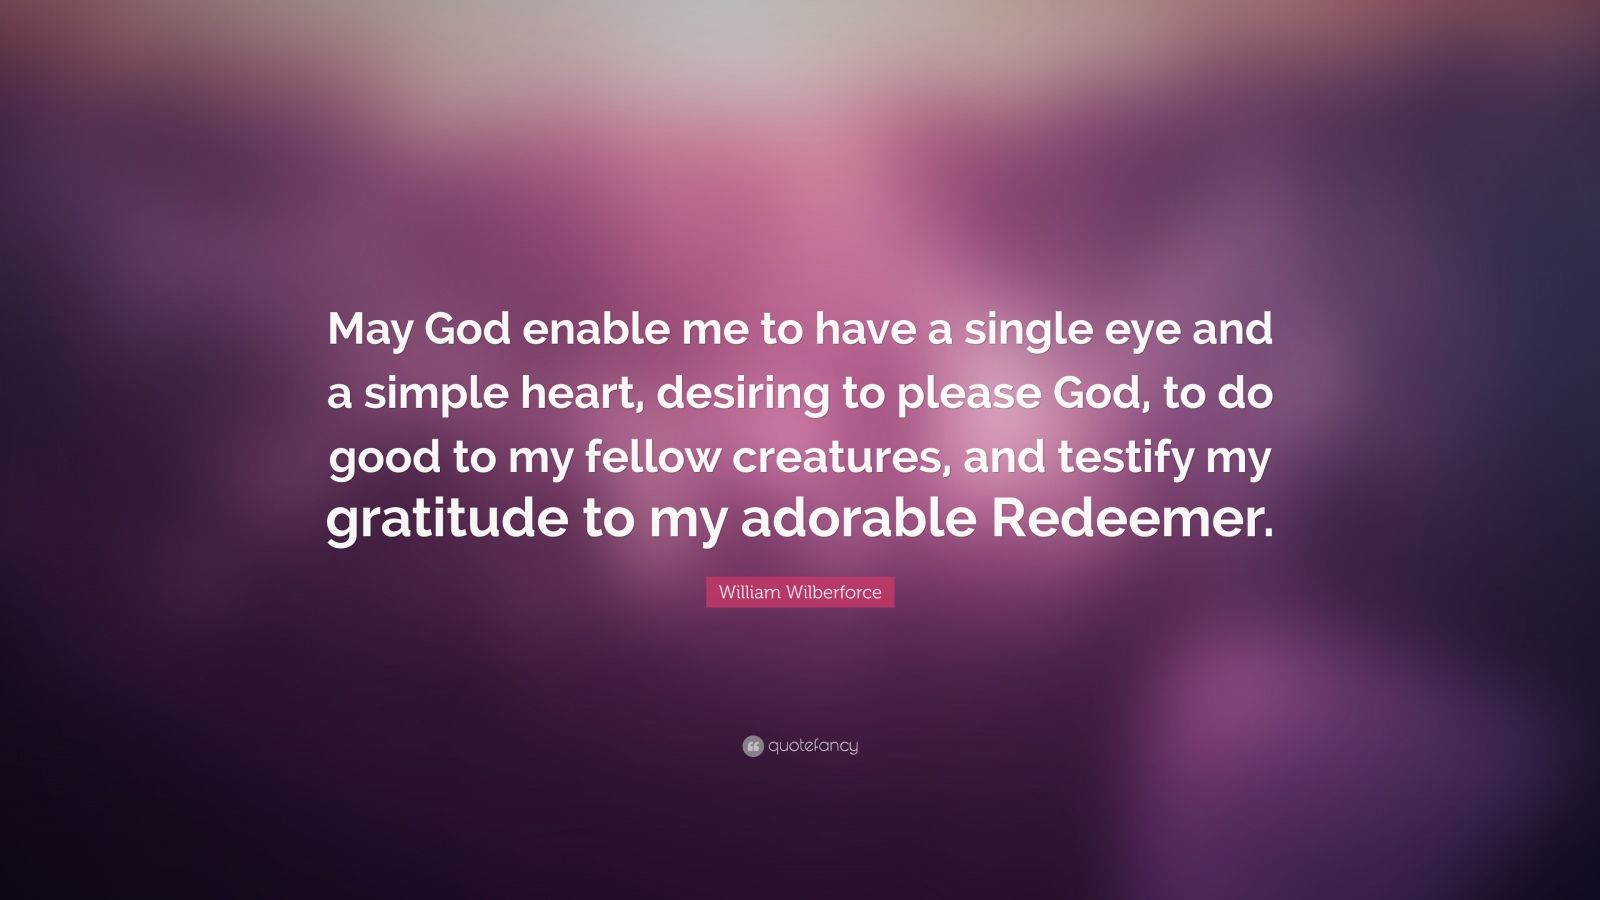 "William Wilberforce Quote: ""May God enable me to have a single eye and a simple heart, desiring to please God, to do good to my fellow creatures, and testify my gratitude to my adorable Redeemer."""